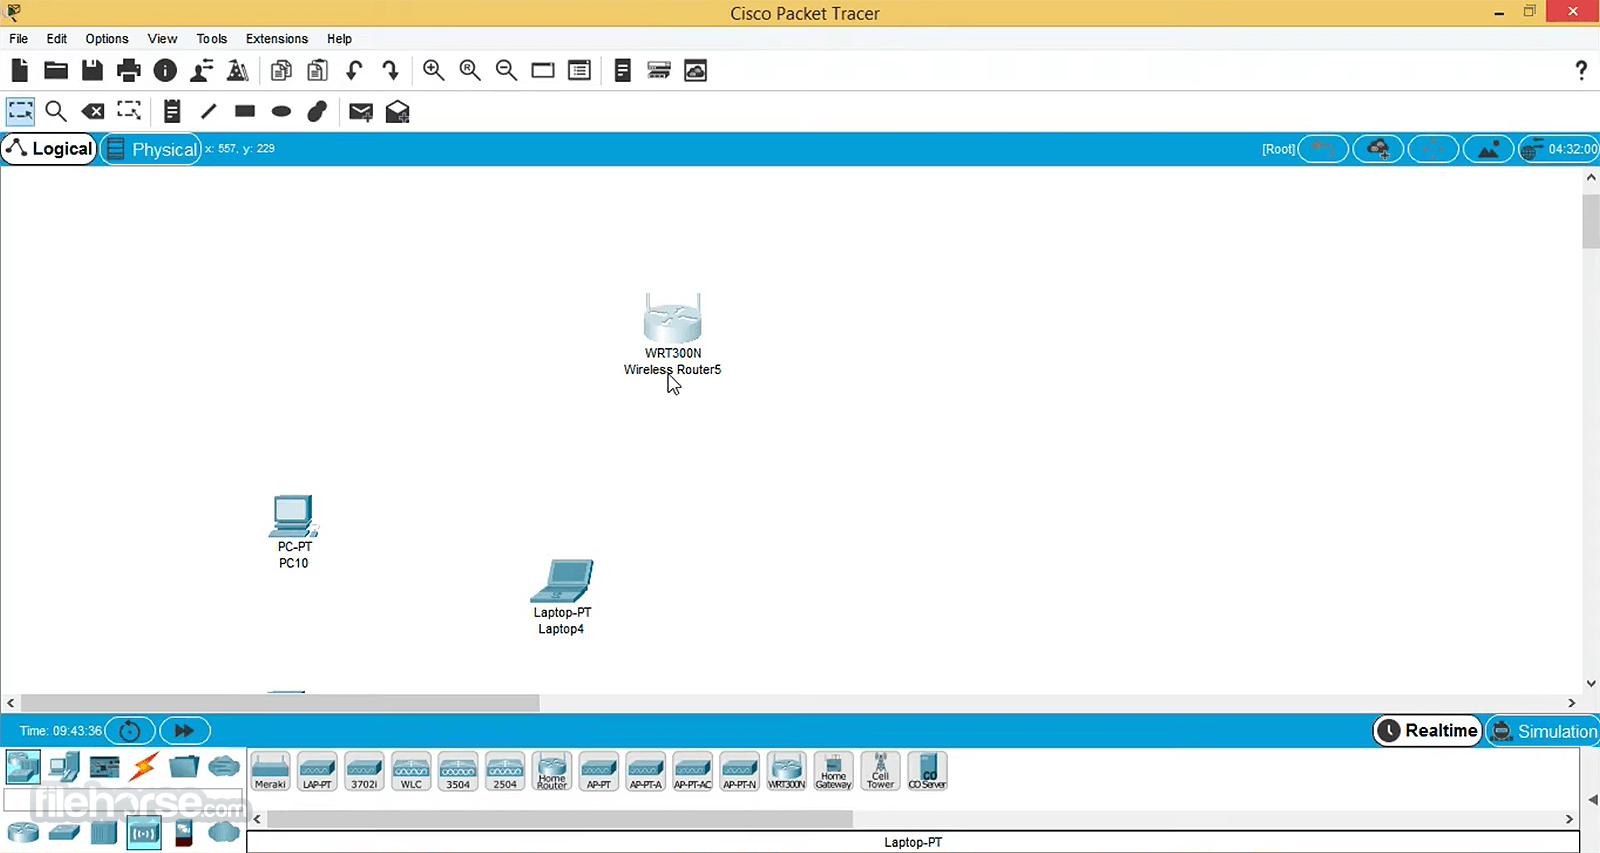 cisco packet tracer 5.2 gratuitement